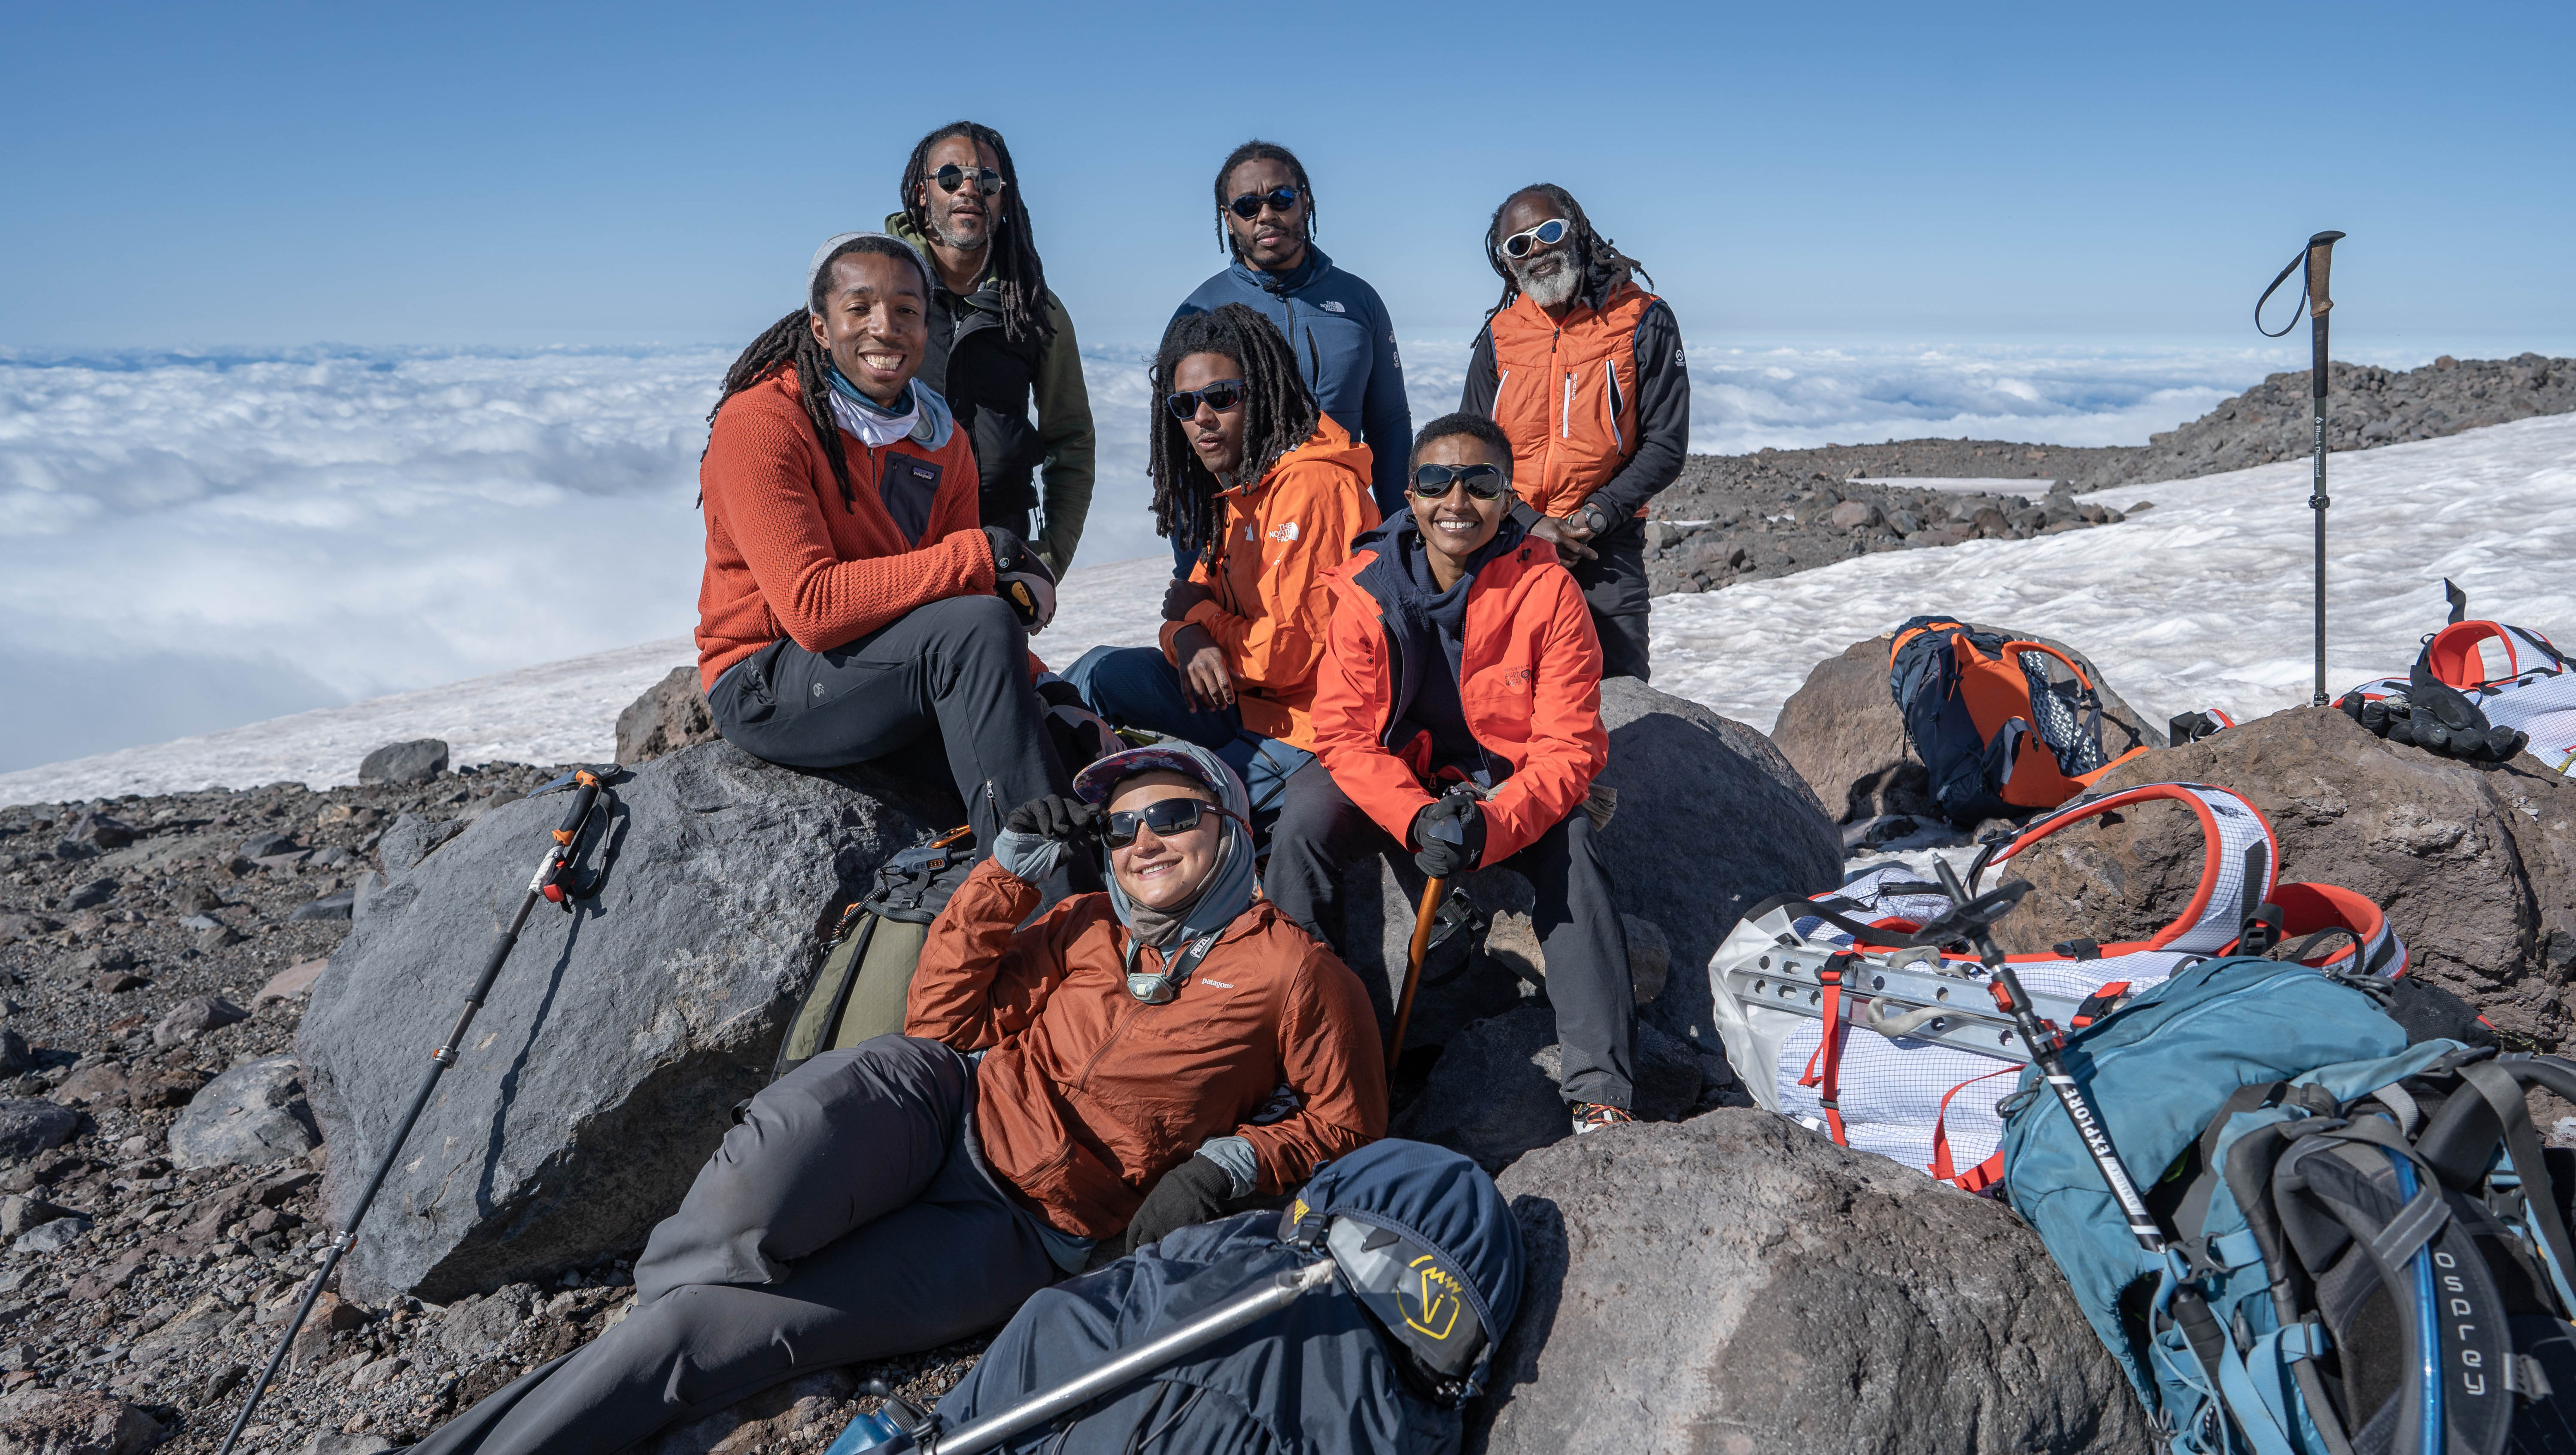 All-Black Everest team aims to diversify the outdoors industry